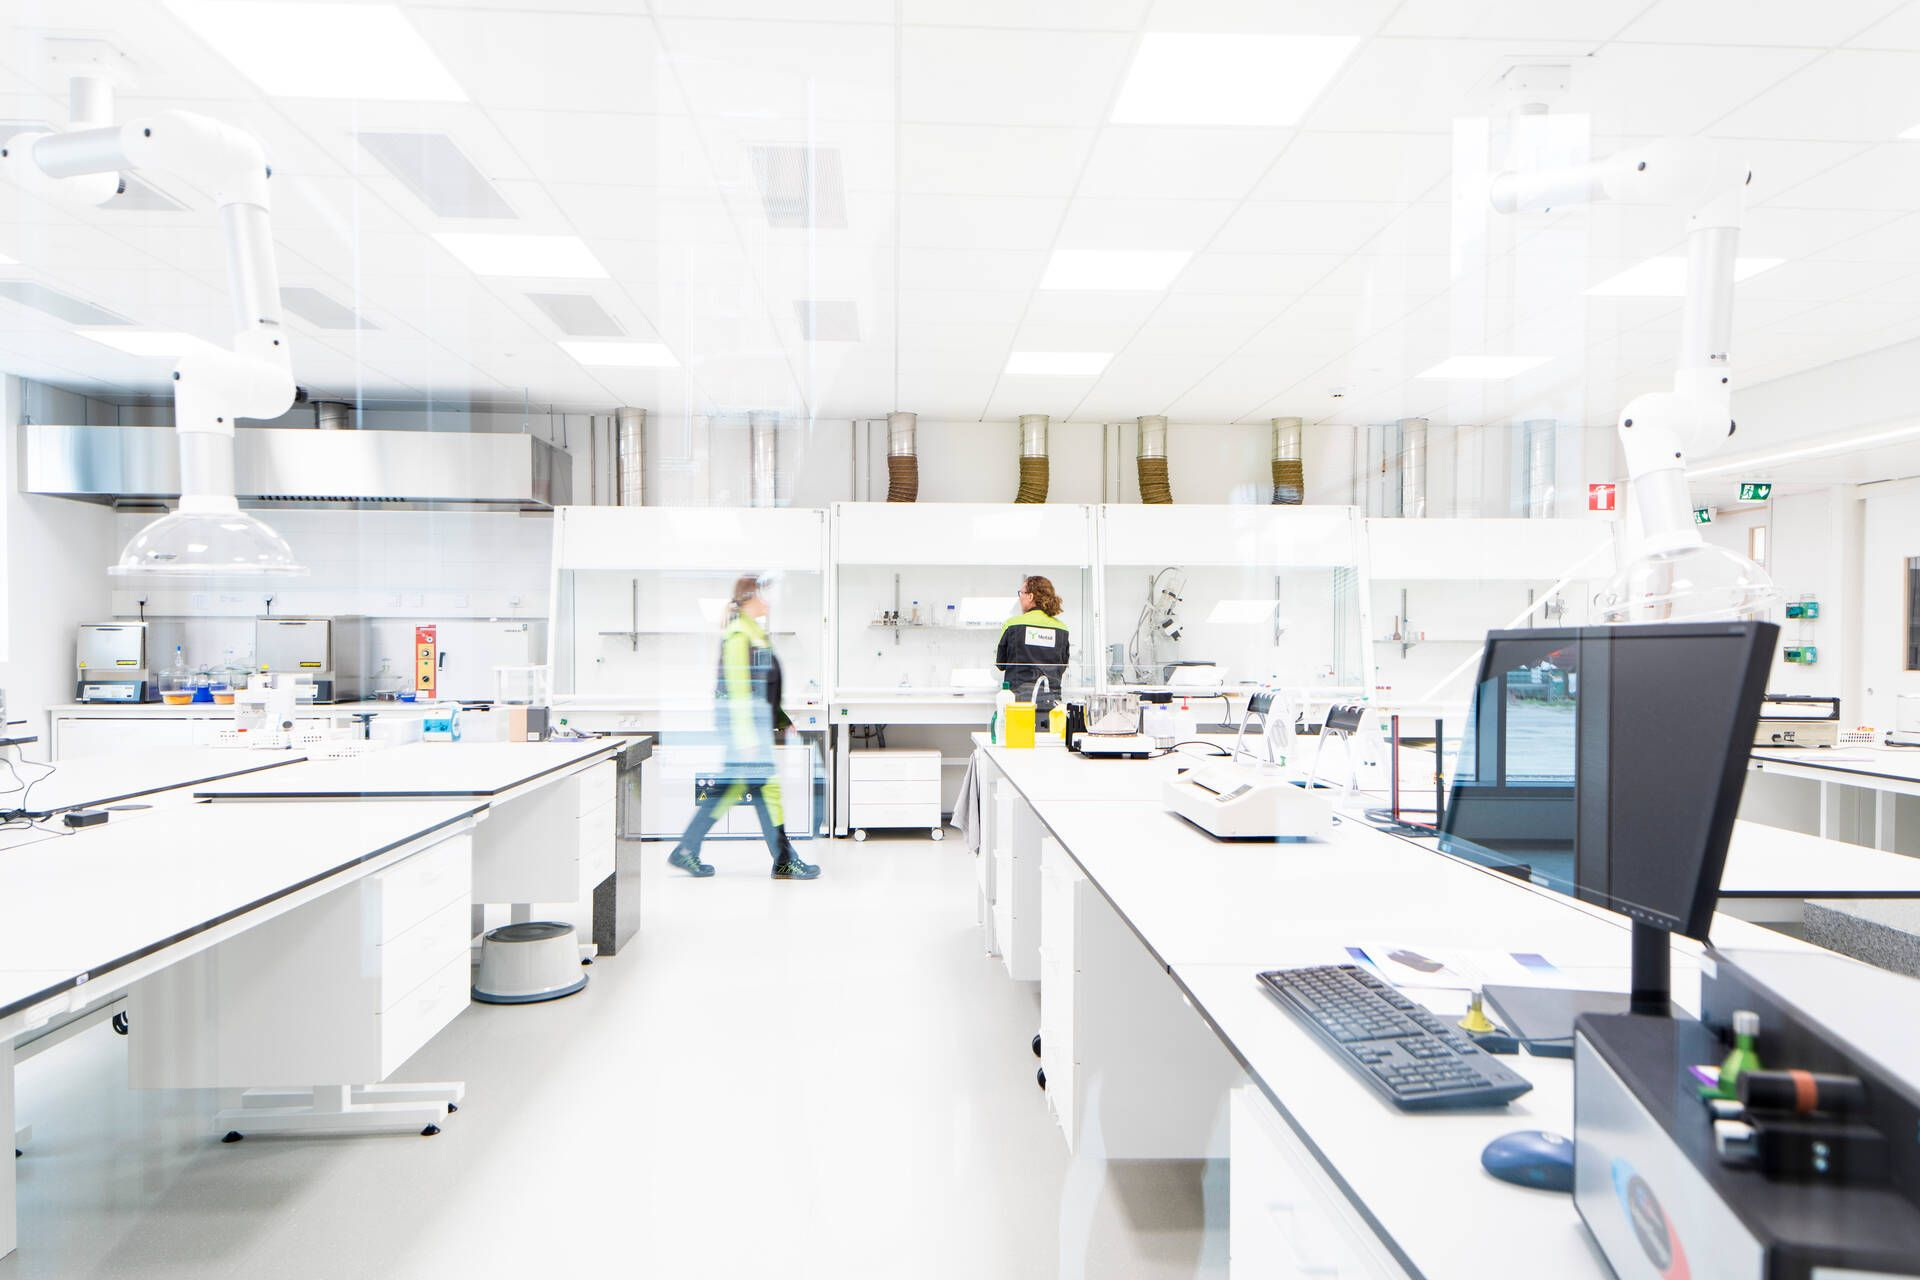 Metsä Board launches a state-of-the-art Excellence Centre to accelerate paperboard and packaging innovation